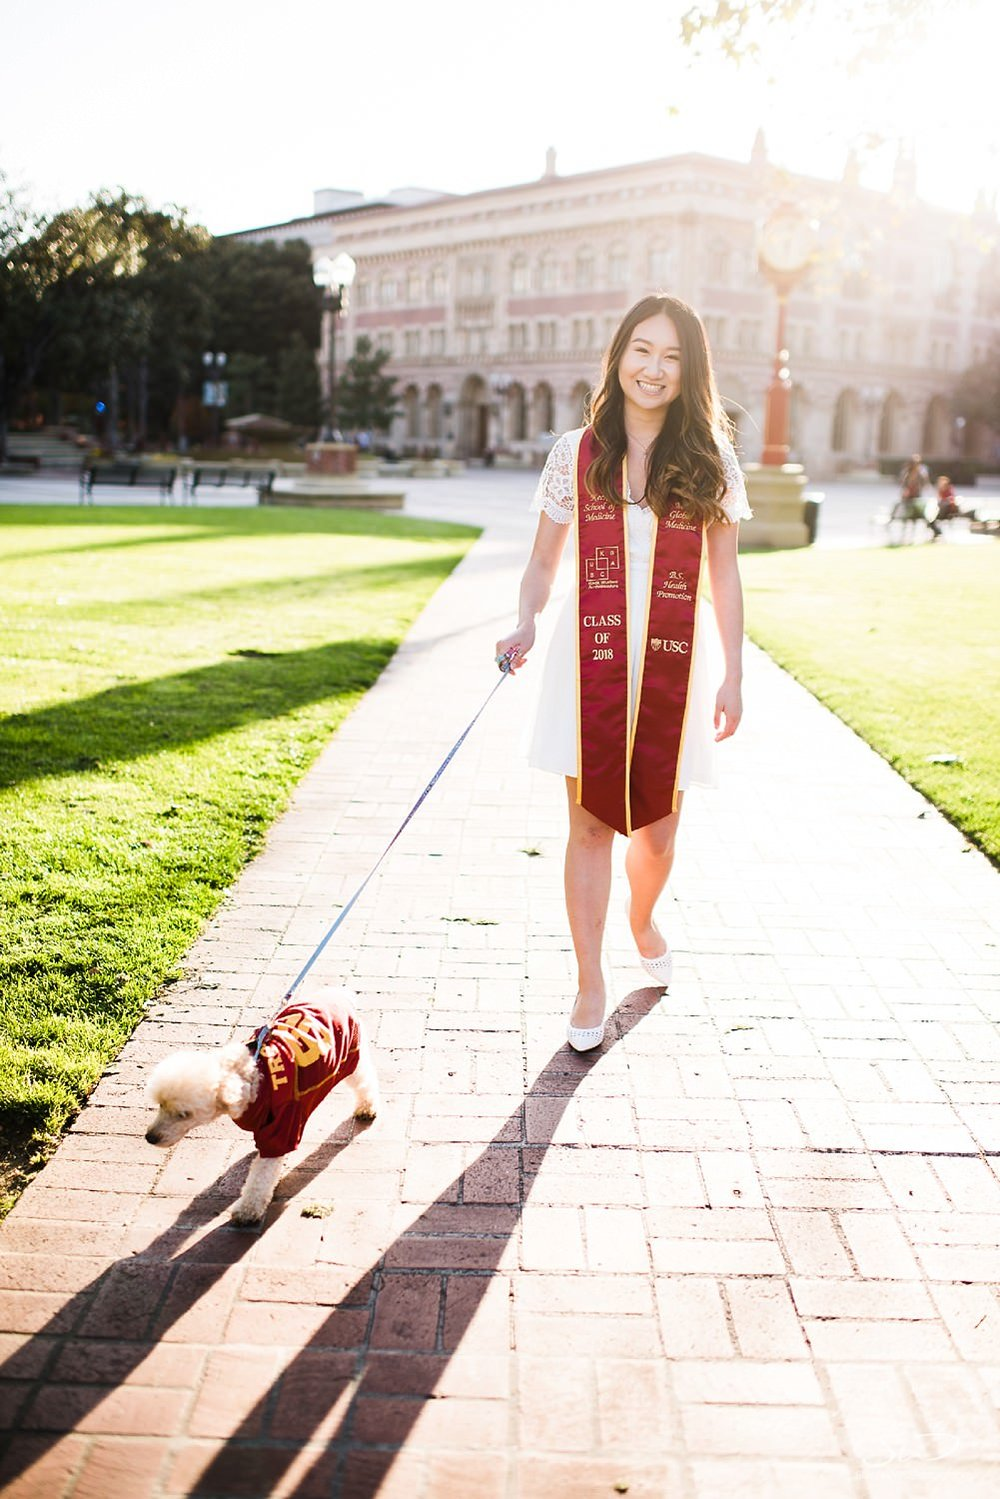 Dog-walking at USC | Los Angeles Orange County Senior Portrait & Wedding Photographer